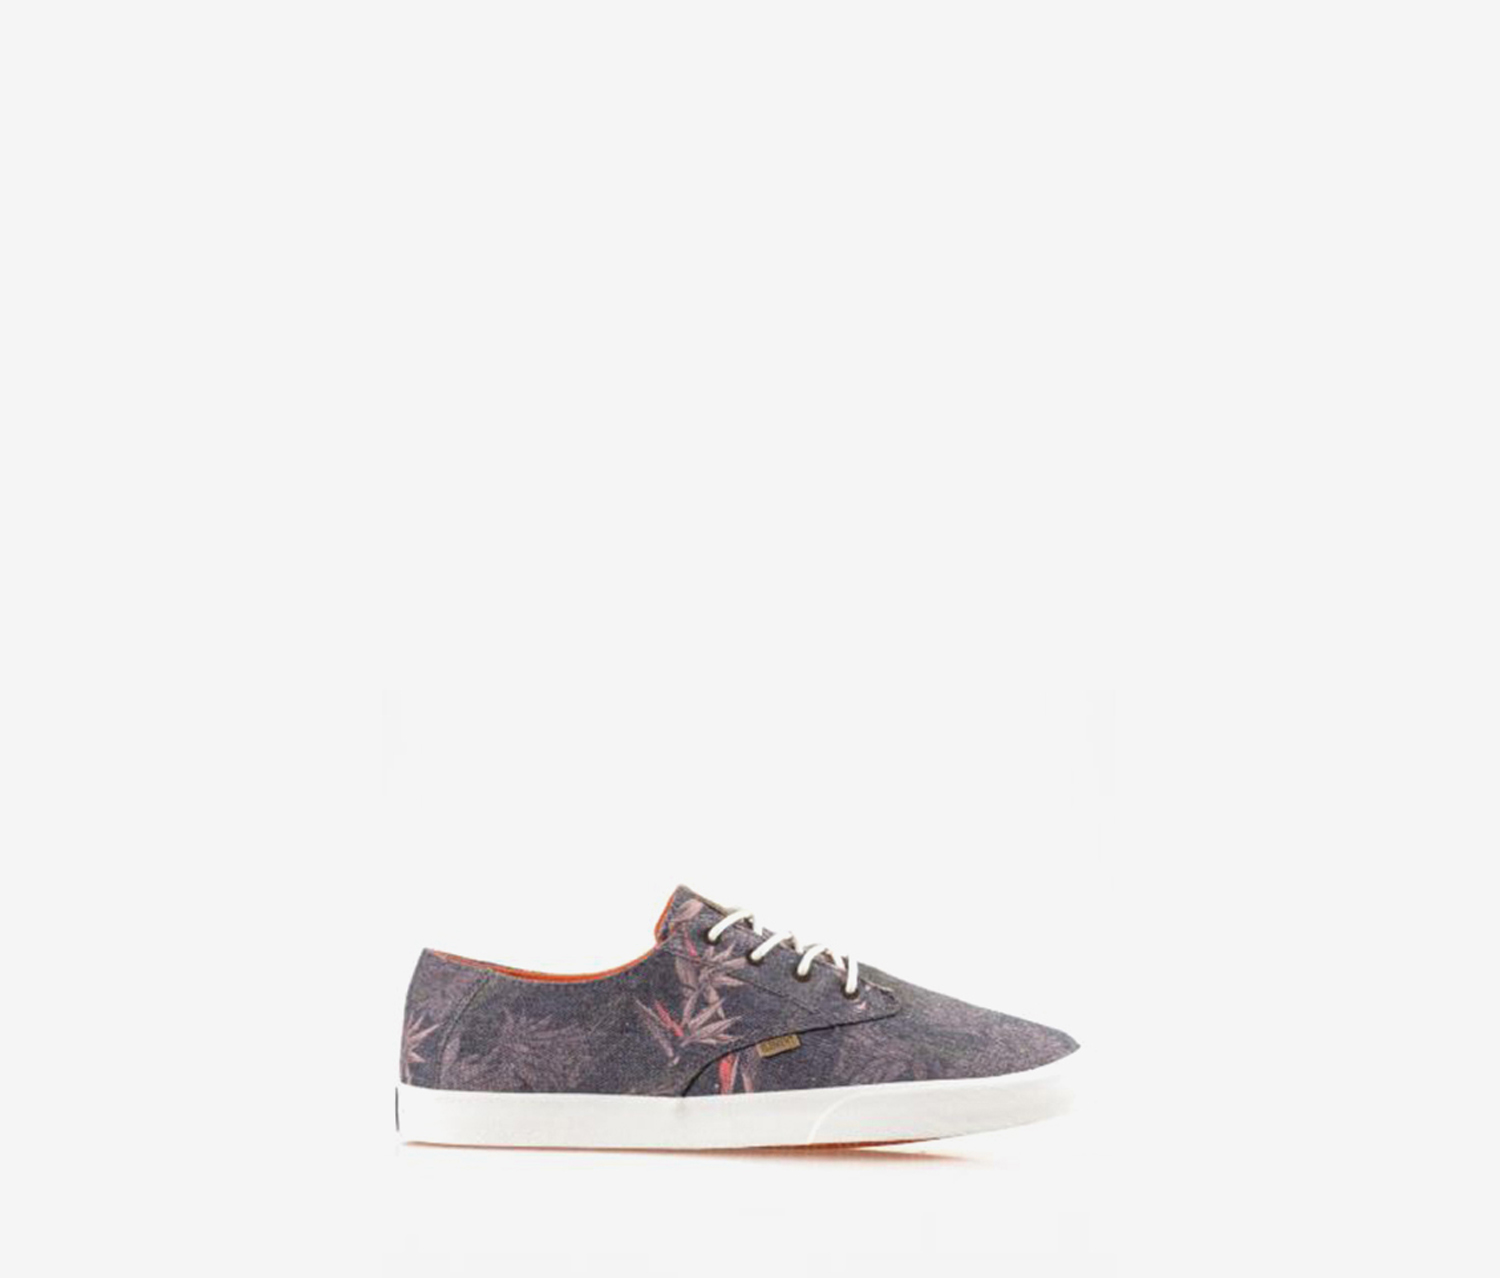 Element Men's Vernon Floral Shoes, Grey/Orange